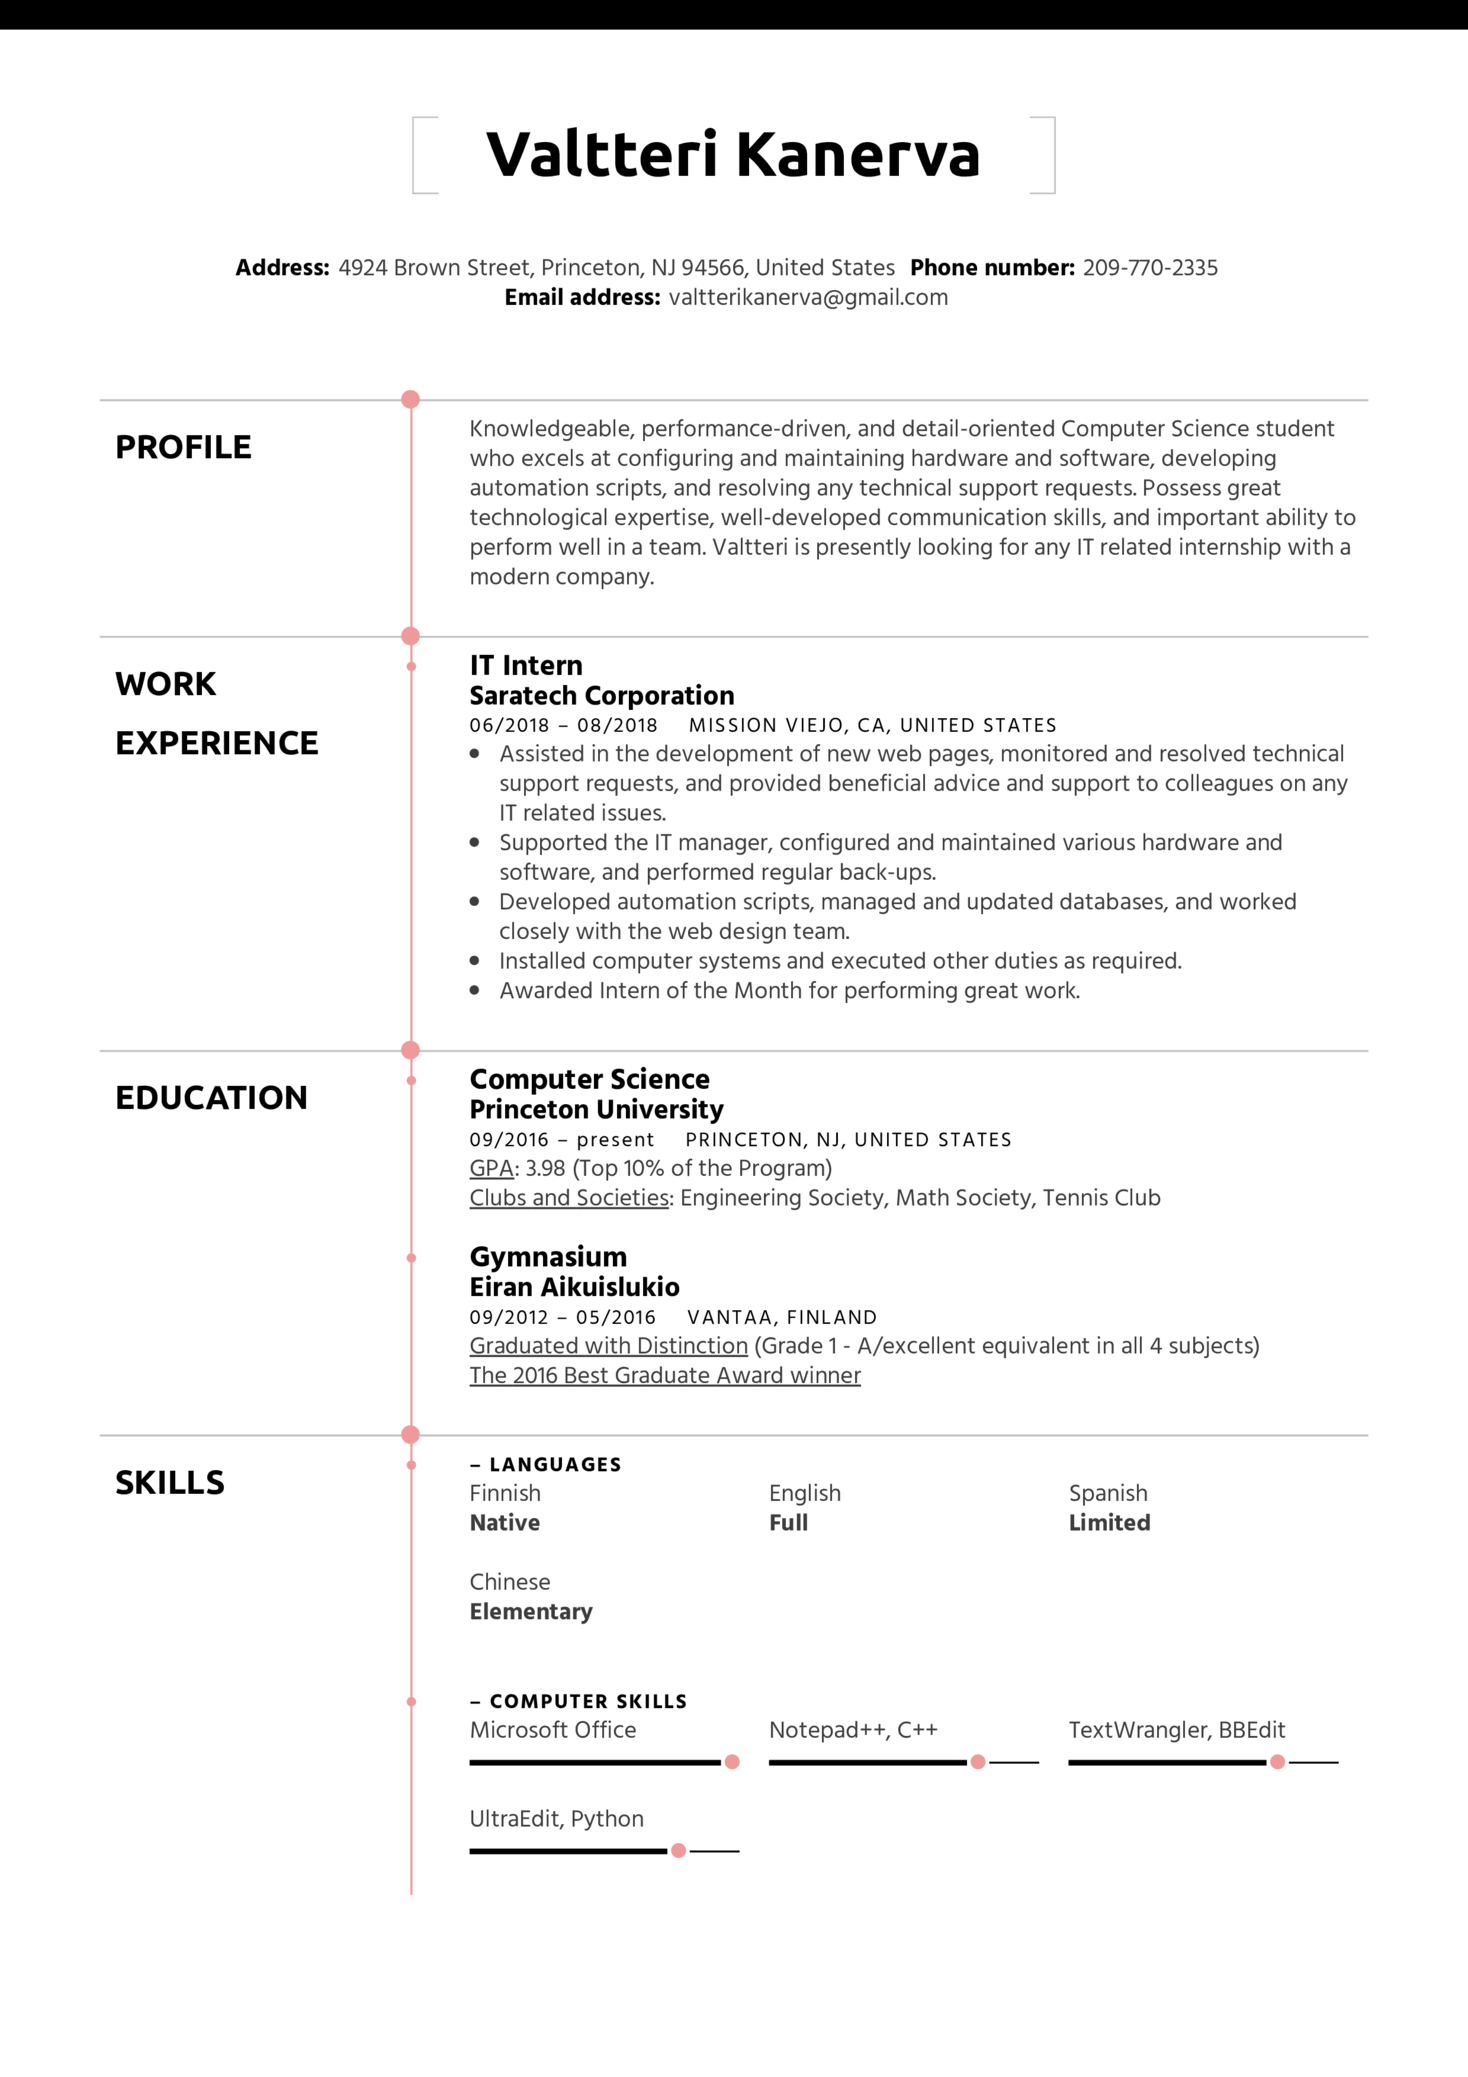 IT Intern Resume Template (Part 1)